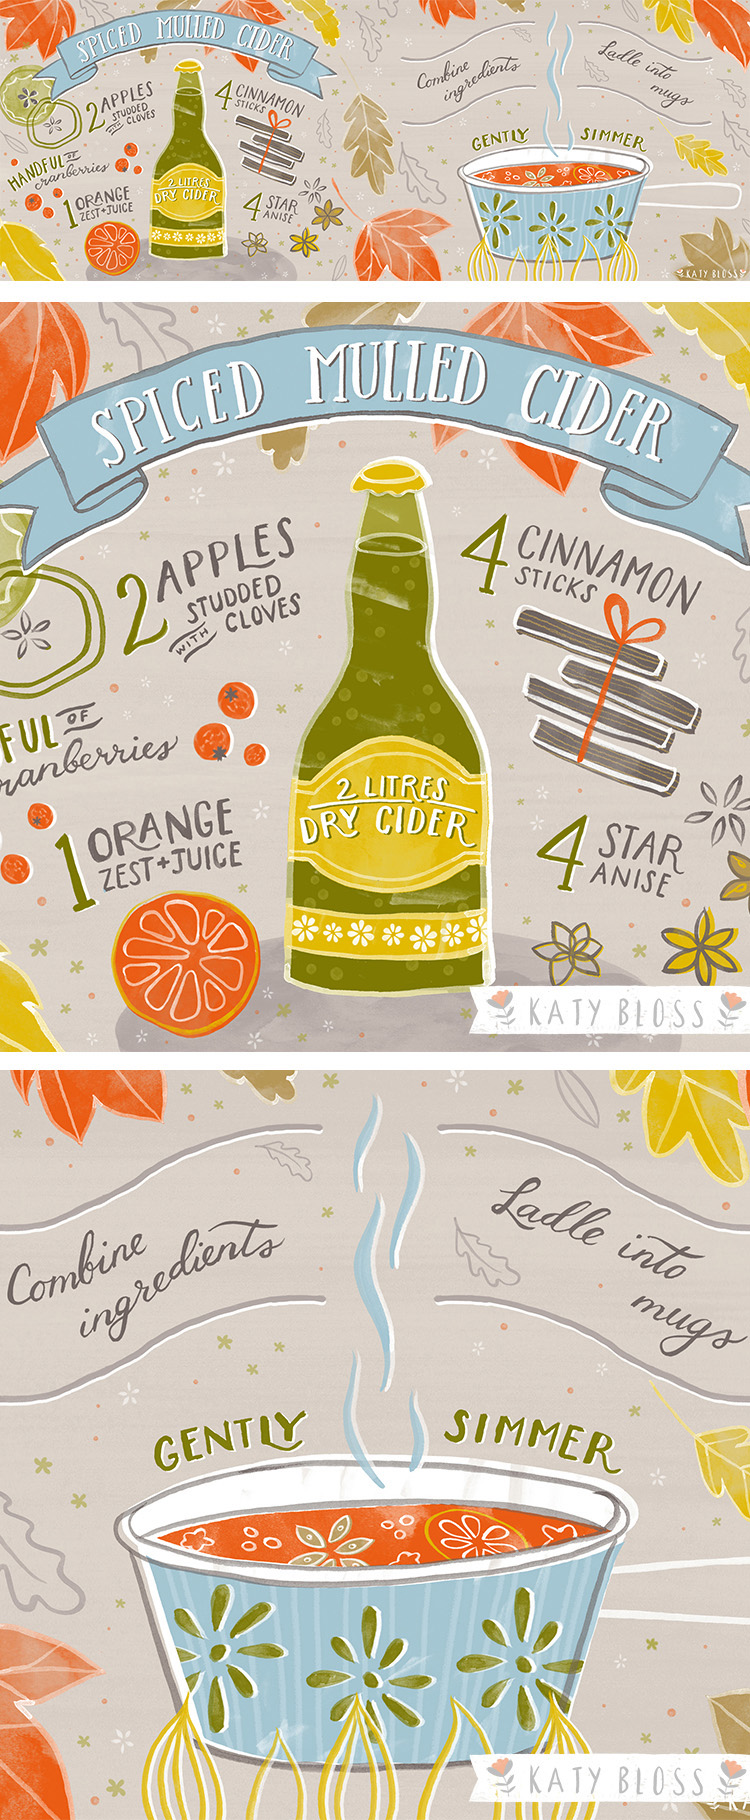 Katy Bloss Spiced Mulled Cider Illustrated Recipe